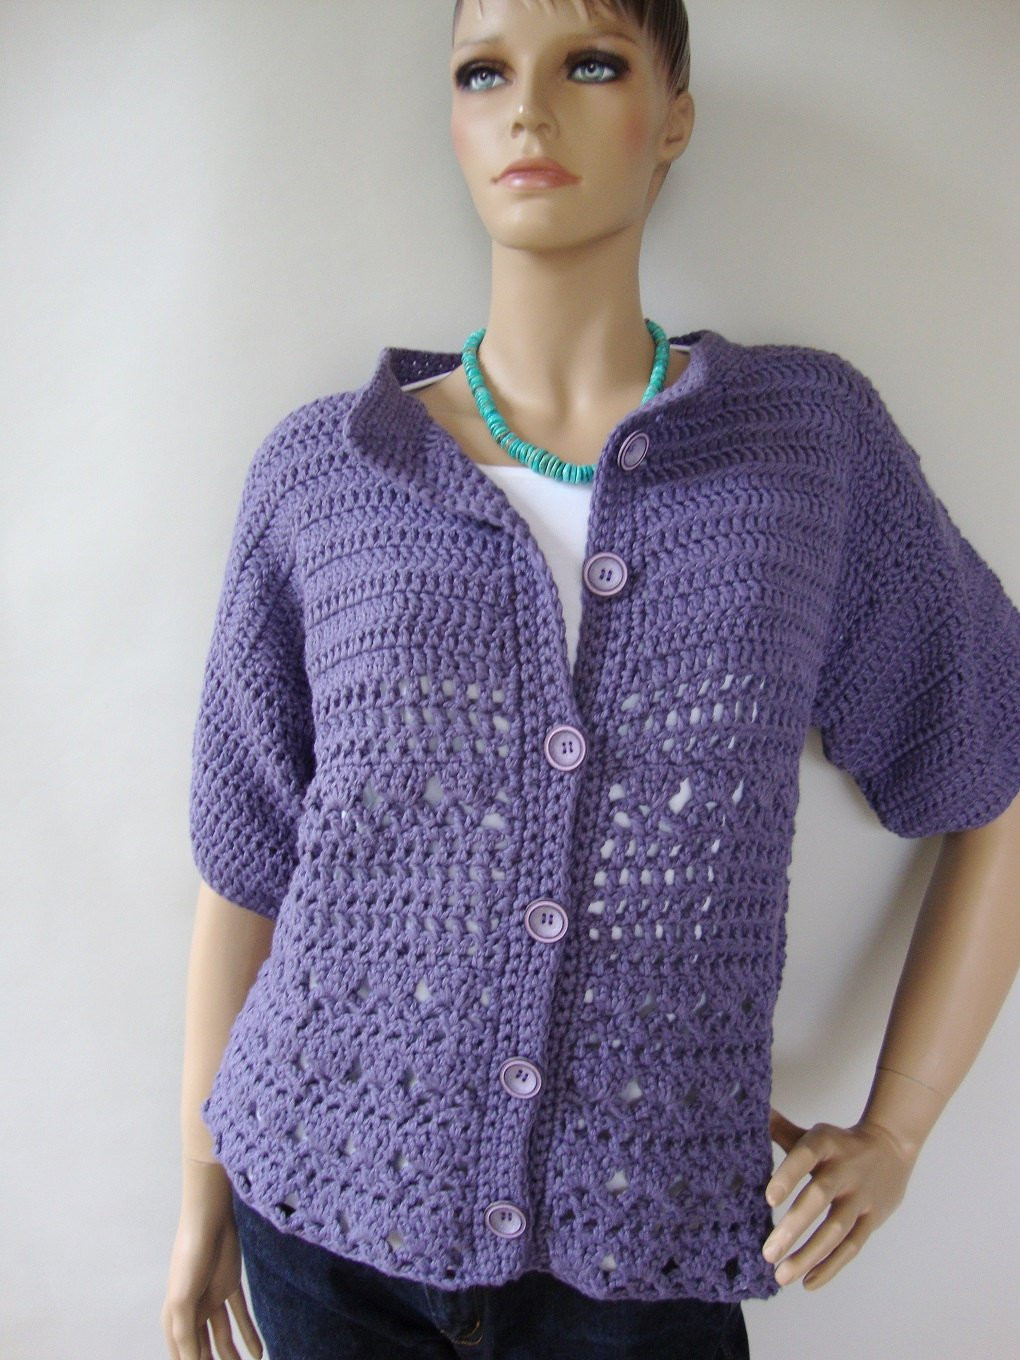 Crochet Cardigan Sweater Inspirational Crochet Sweater Summer Cardigan Blue Cardigan Cotton Of Luxury 41 Ideas Crochet Cardigan Sweater